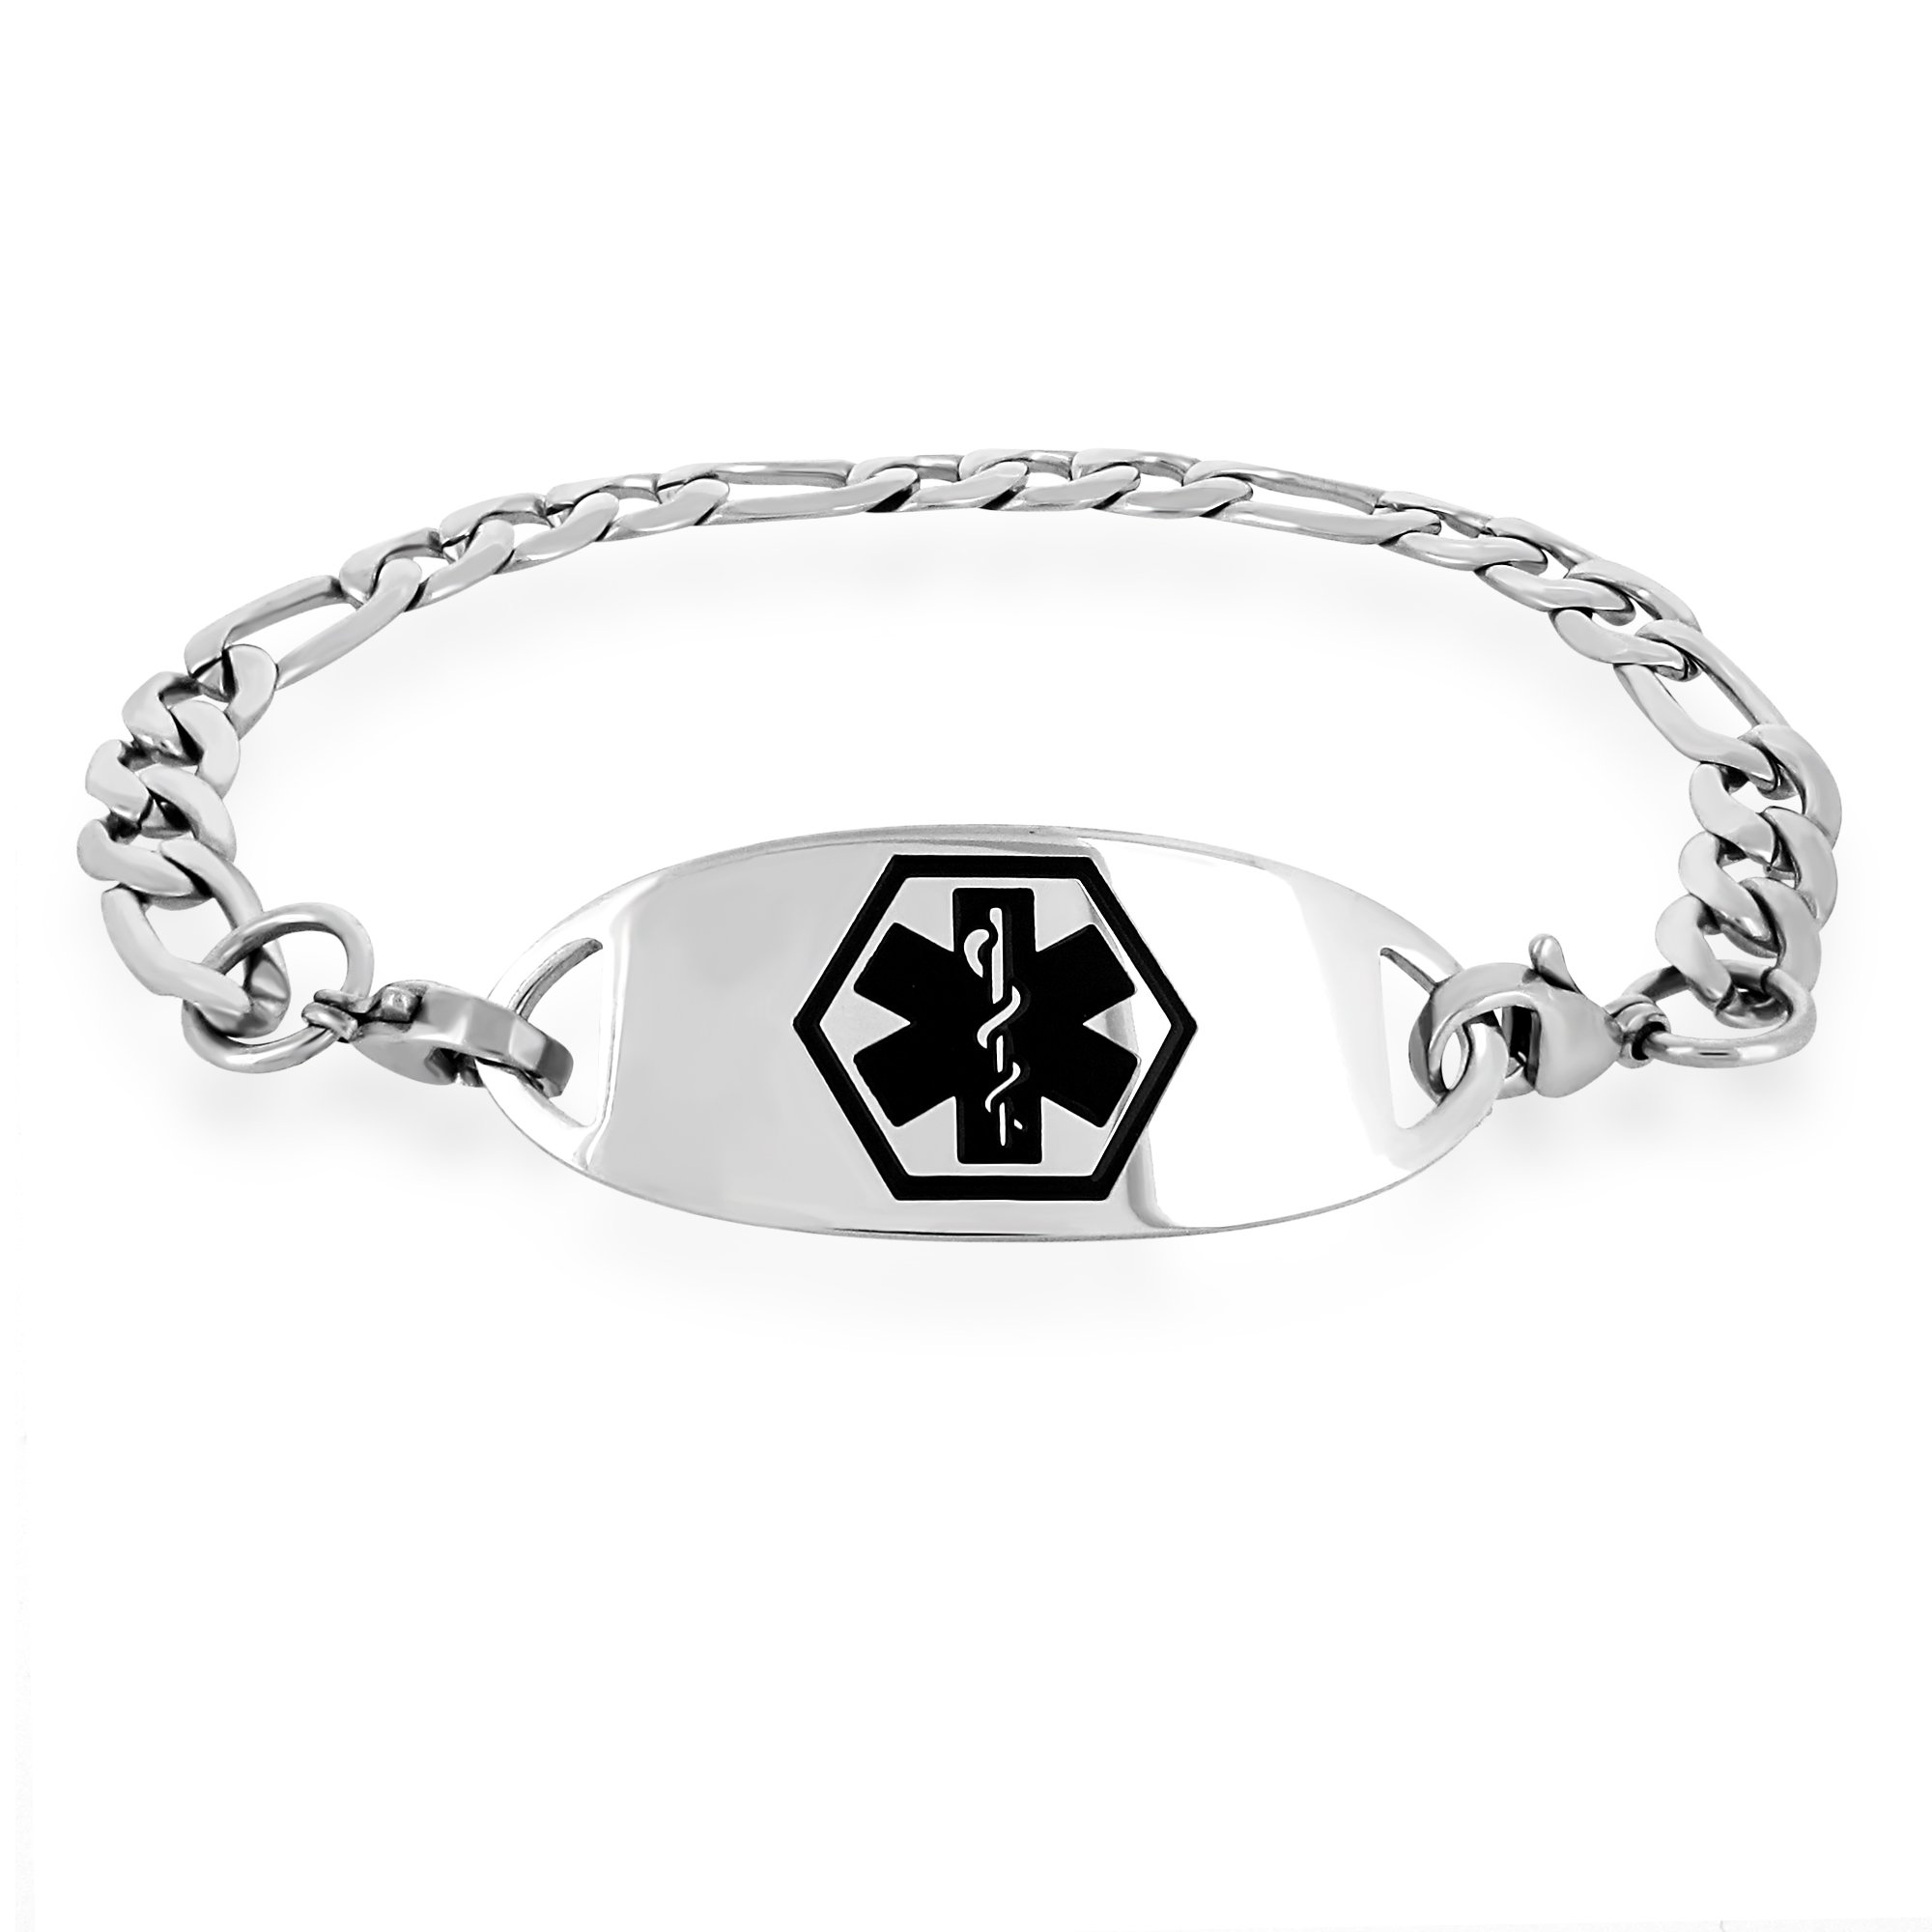 engraved of us medical seizure lines b id review handmade bracelet customer by products custom helen three verified